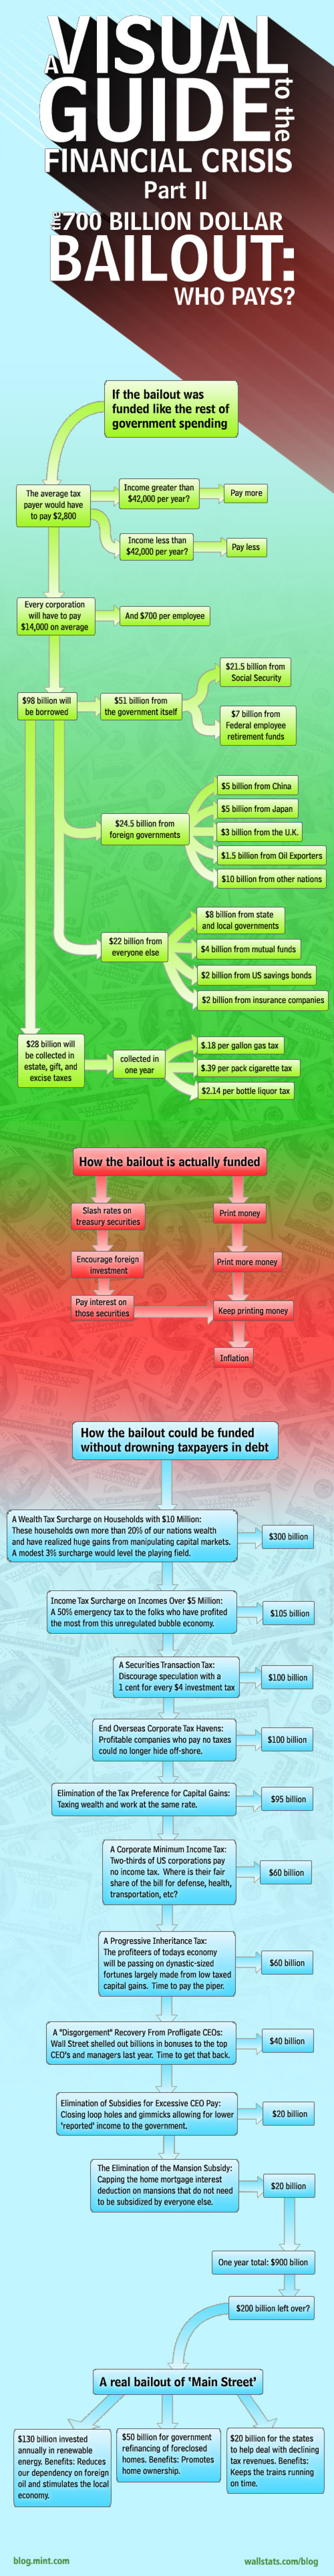 A Visual Guide to the Financial Crisis: Part 2 Infographic